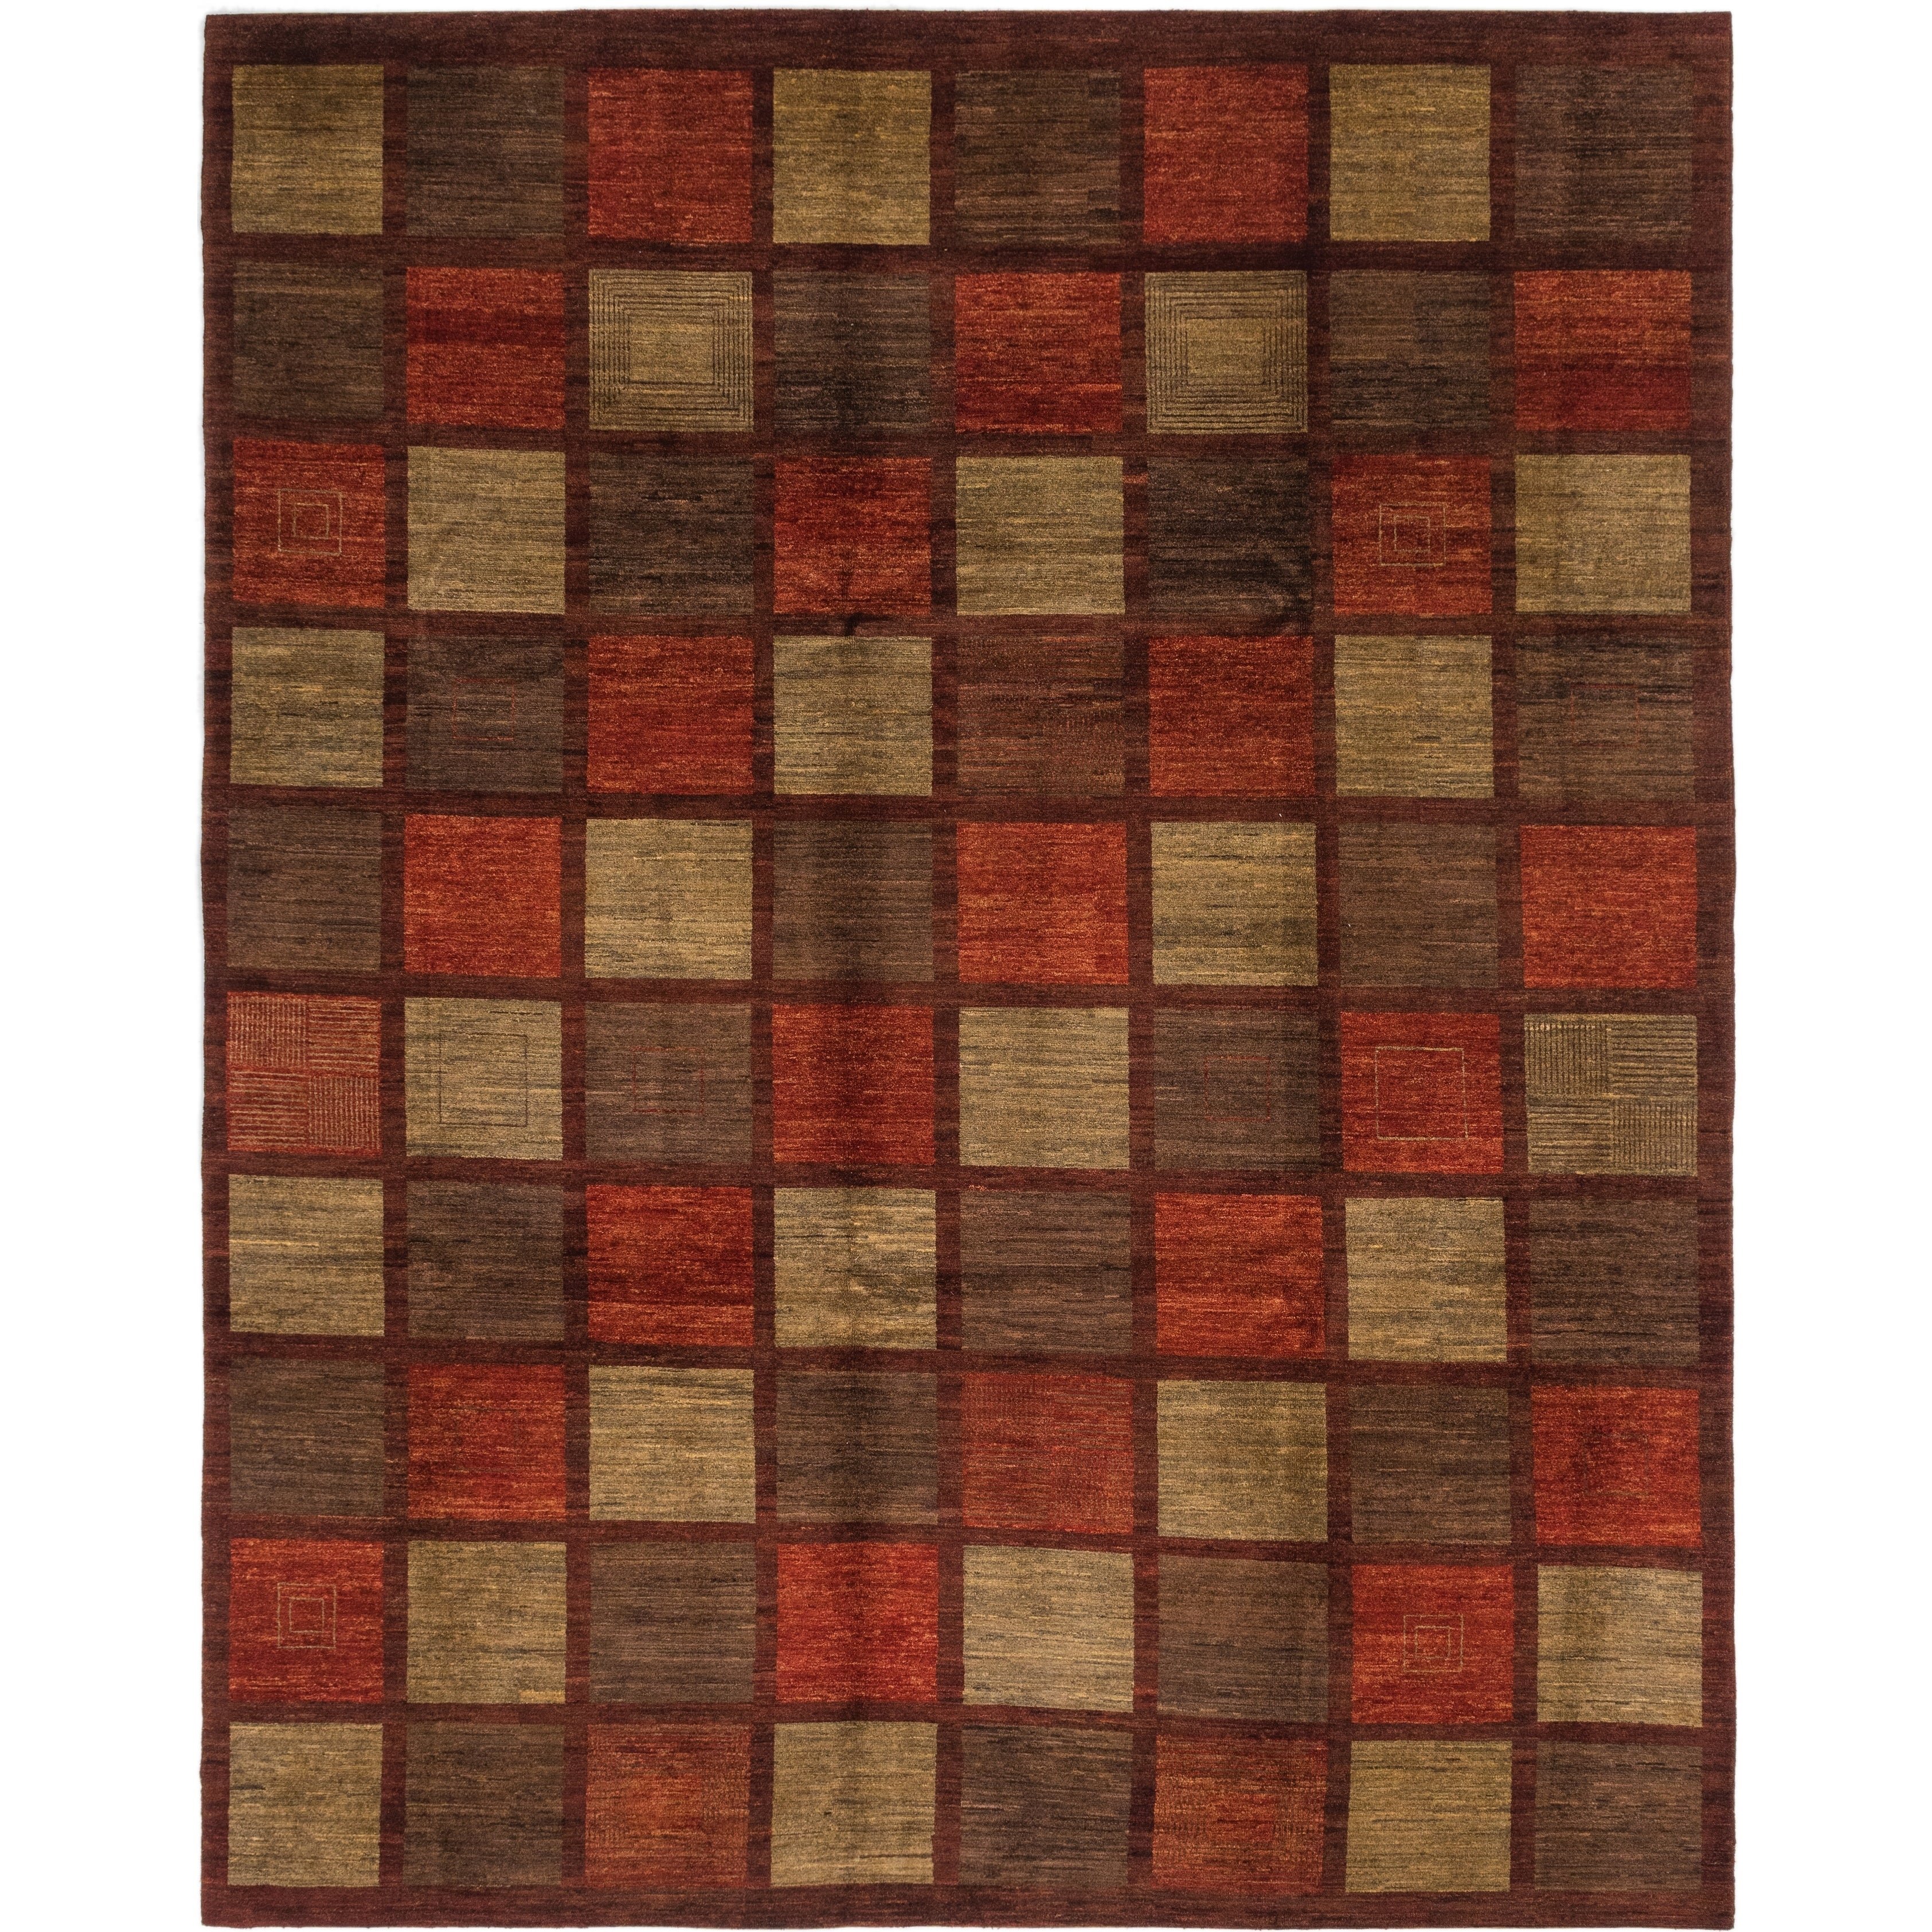 Hand Knotted Kashkuli Gabbeh Wool Area Rug - 10 2 x 12 8 (Red - 10 2 x 12 8)